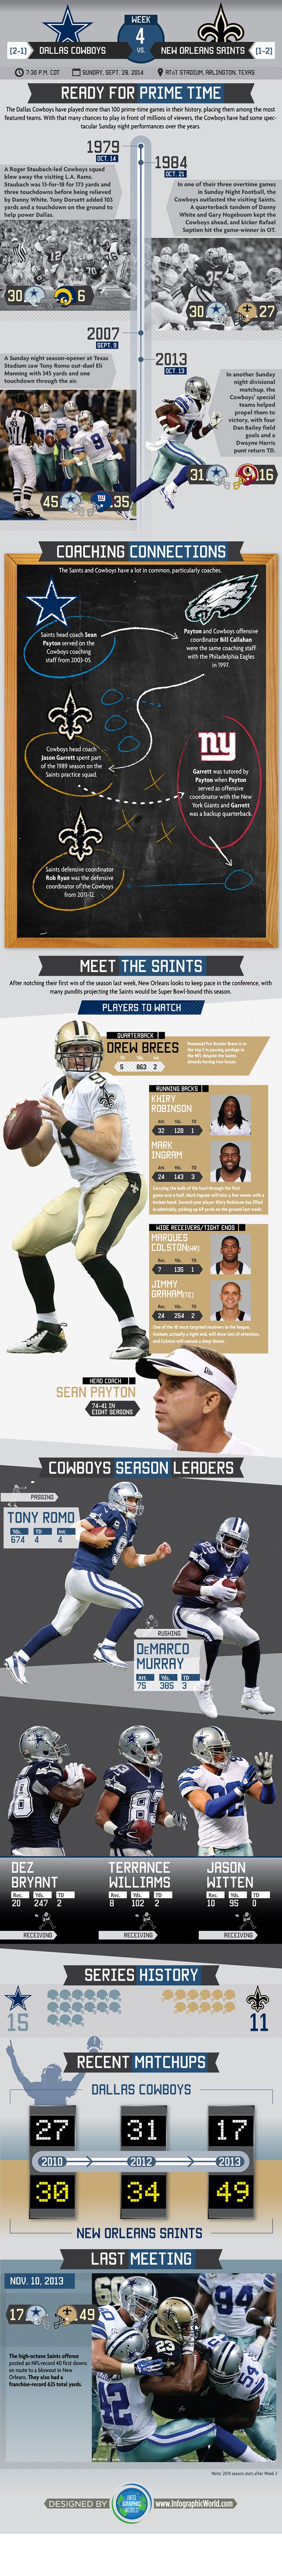 Closer Look at Cowboys-Saints Rivalry & Prime-Time History #NOvsDAL @saintspins #DallasCowboys